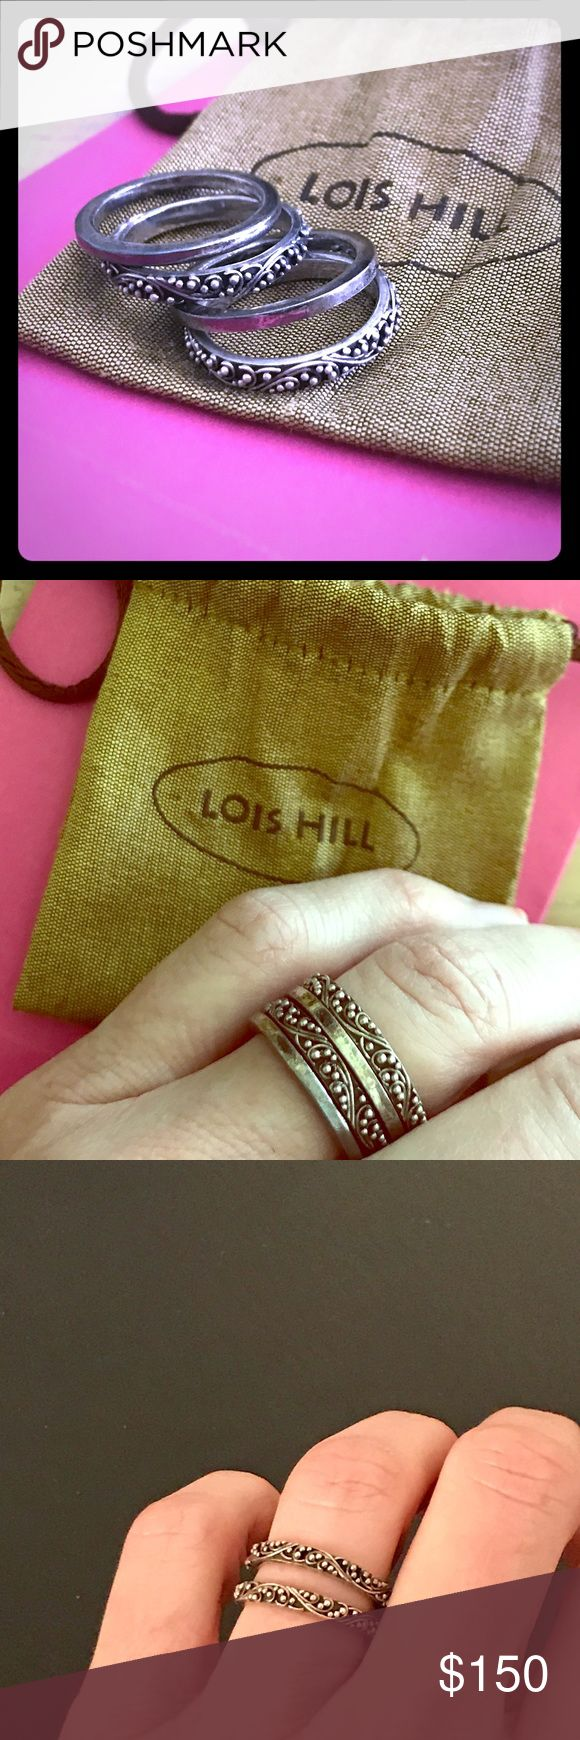 Lois Hill .925 Stackable Bands Beautiful preloved condition!  Intricate scroll bead detail. Wear all 4 stacked or alone. Stamped LH .925 Indonesia. Size 7 Lois Hill Jewelry Rings